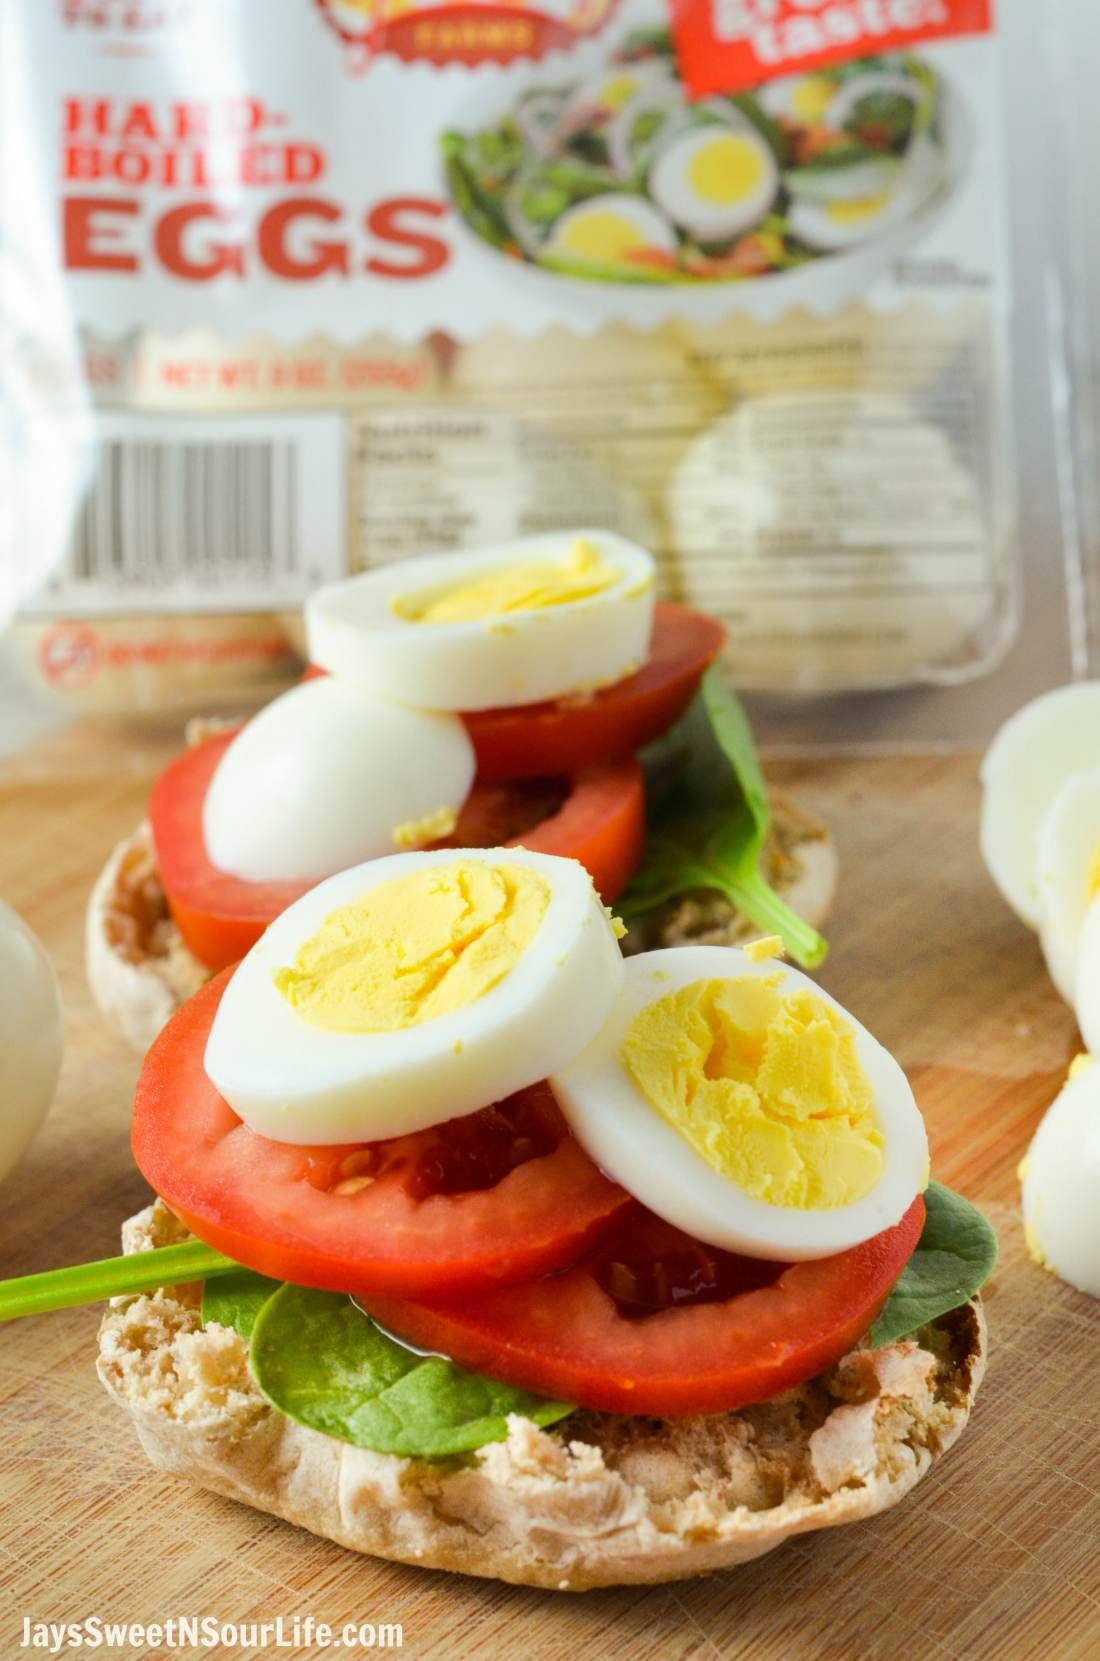 Healthy BLT Meal Prep. Learn how to meal prep the easy way with my no cook meal prep ideas.